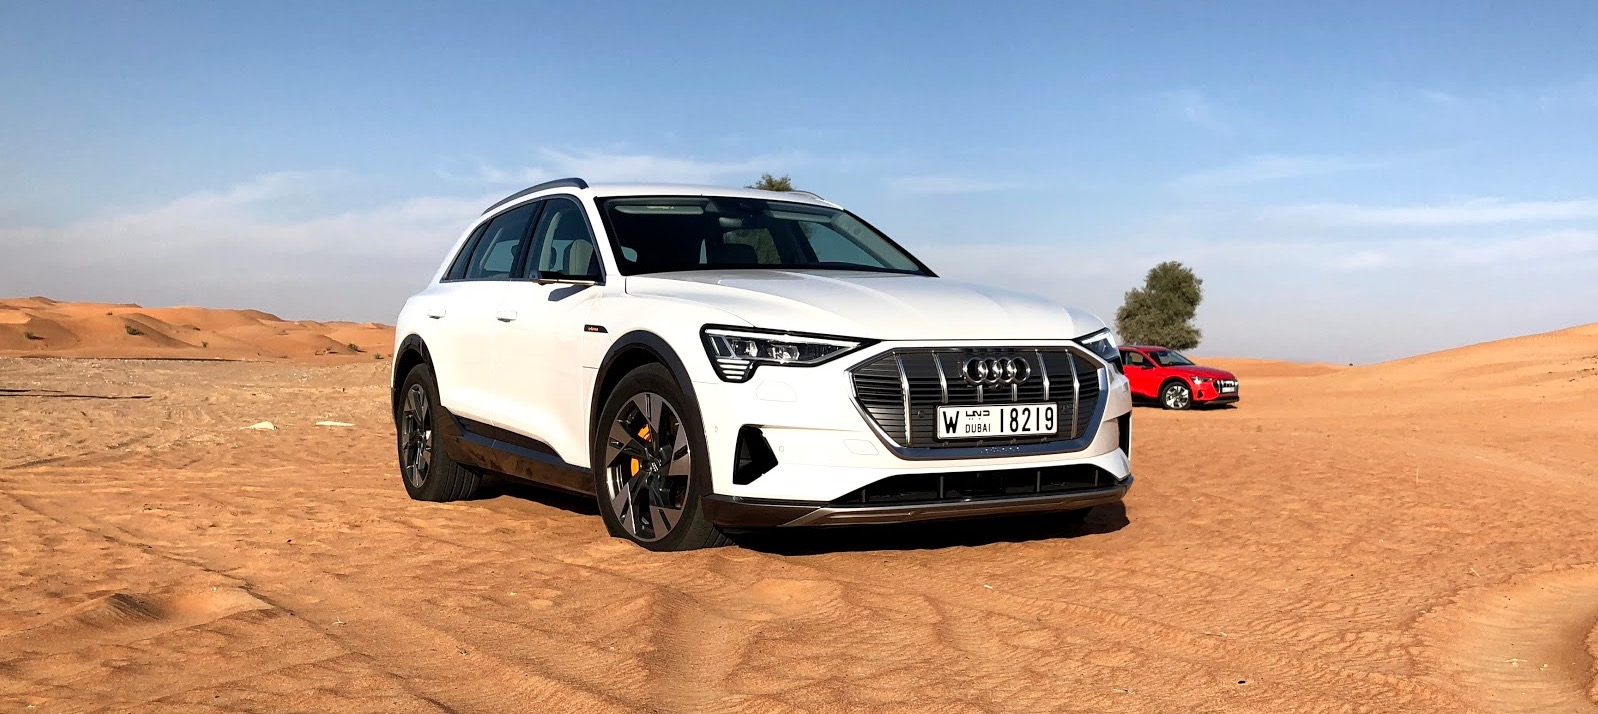 Audi e-tron first drive review: a solid SUV that happens to be electric